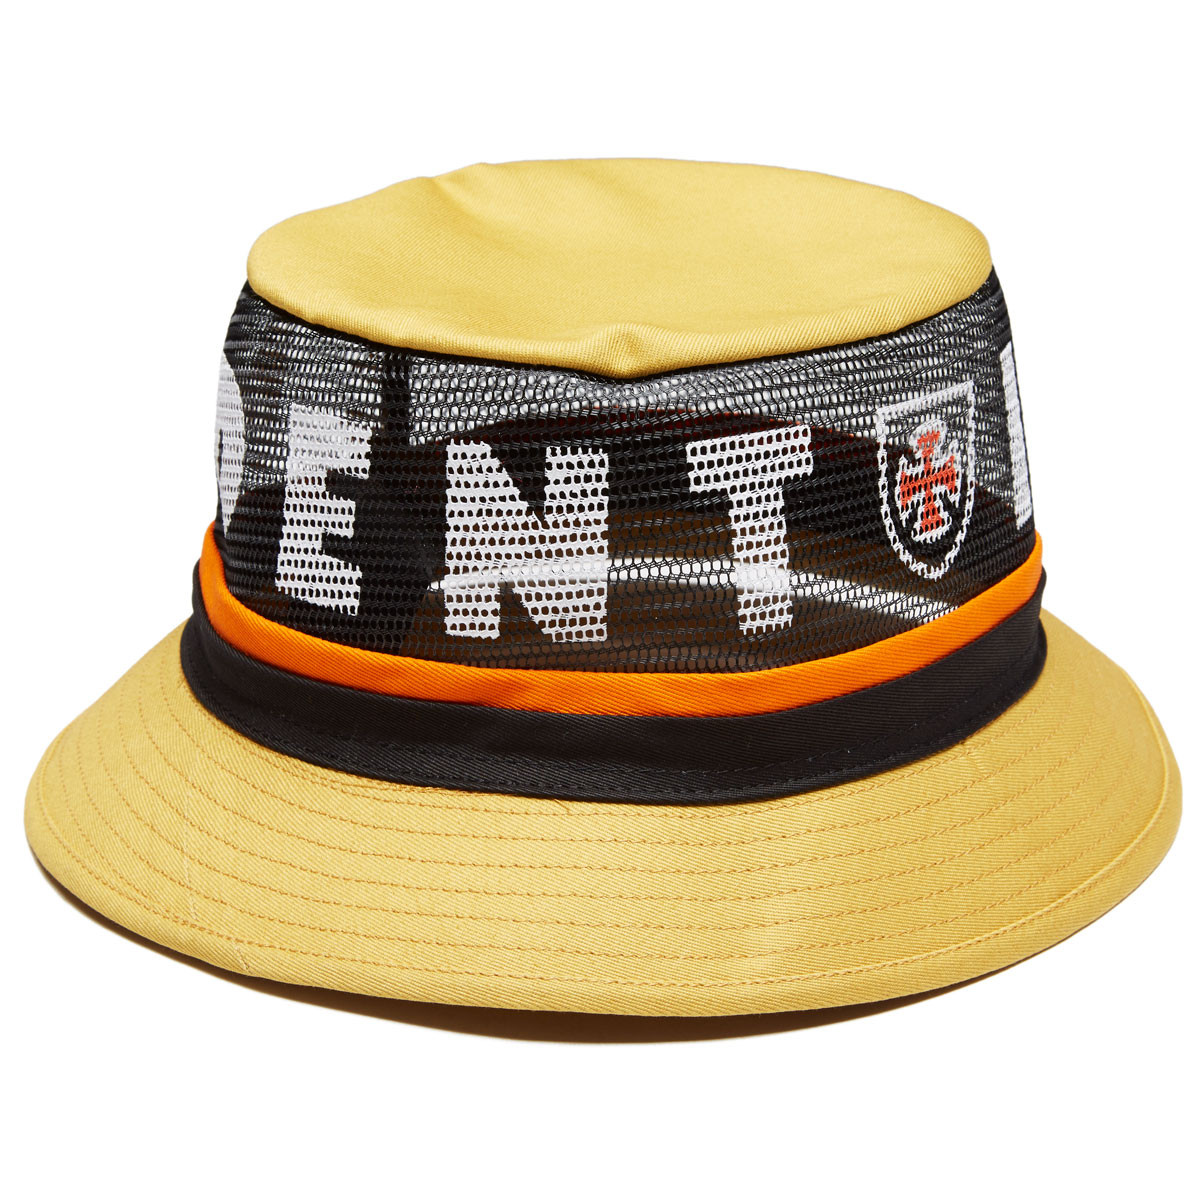 5761a75a5ea1a Brixton x Independent F U Hardy Bucket Hat - Yellow - LG